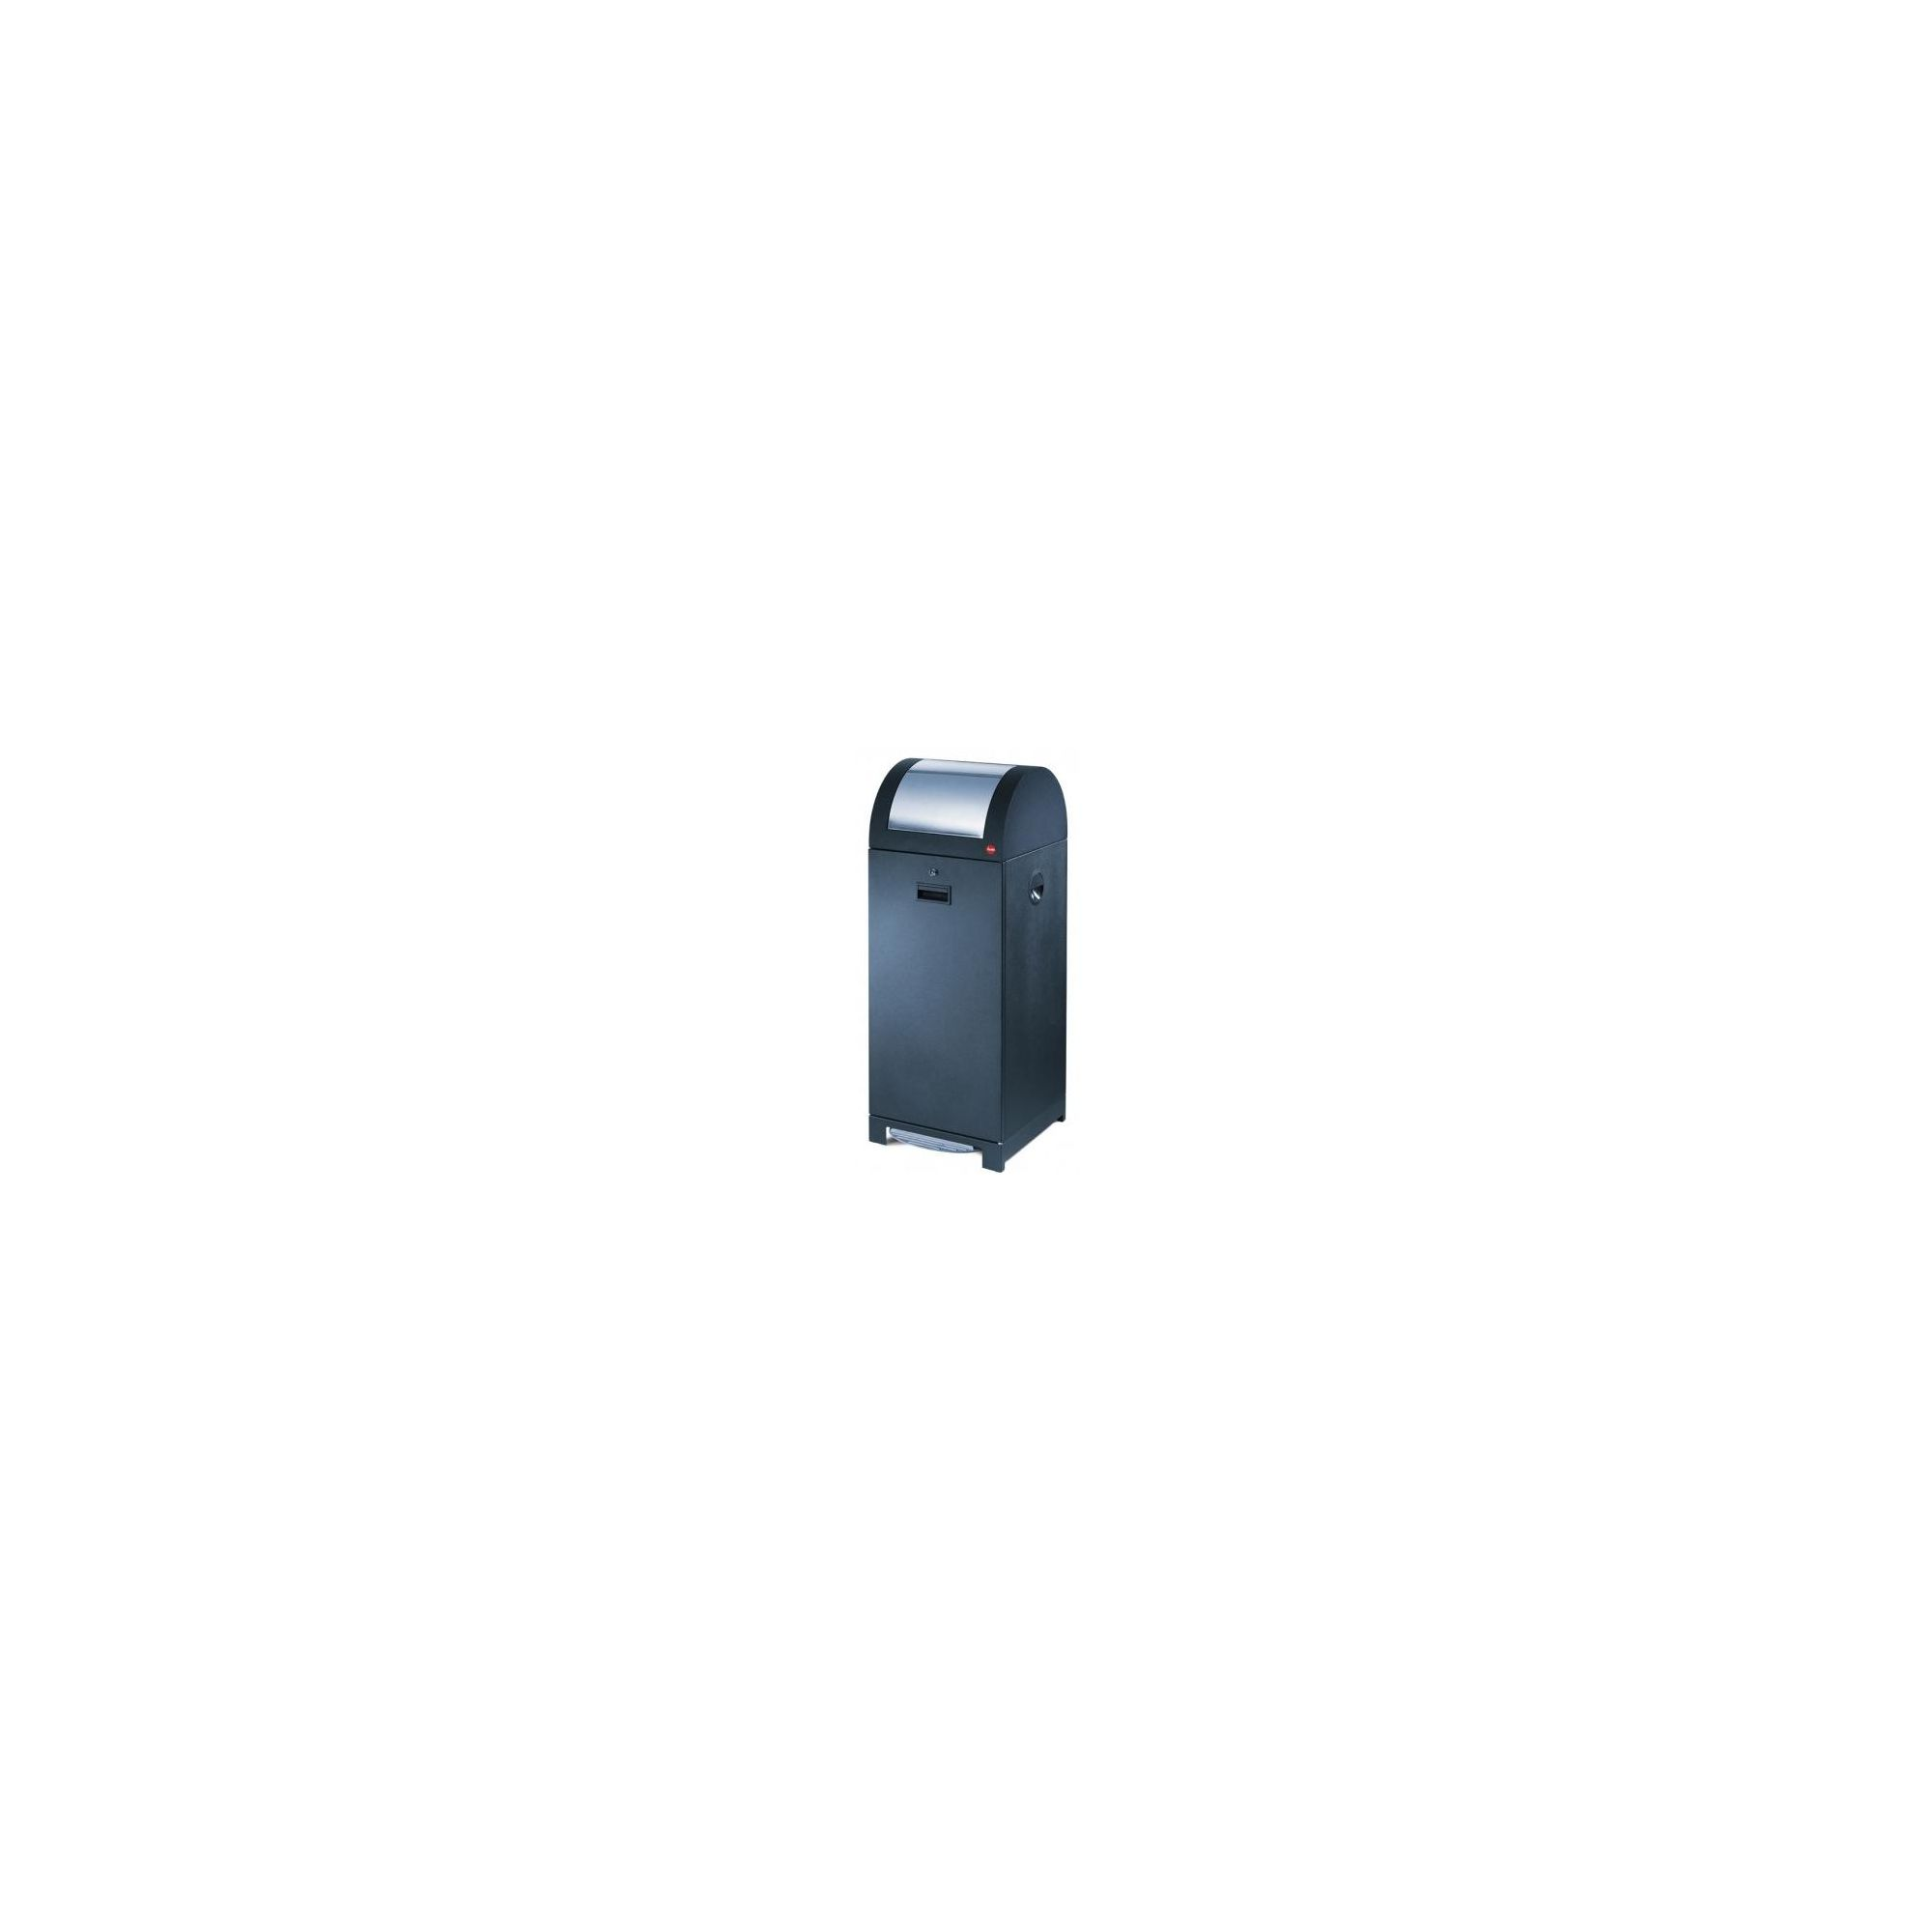 Hailo ProfiLine WSB Design 70P Recycling and Waste Bin in Black with Bin Liner Holder at Tesco Direct